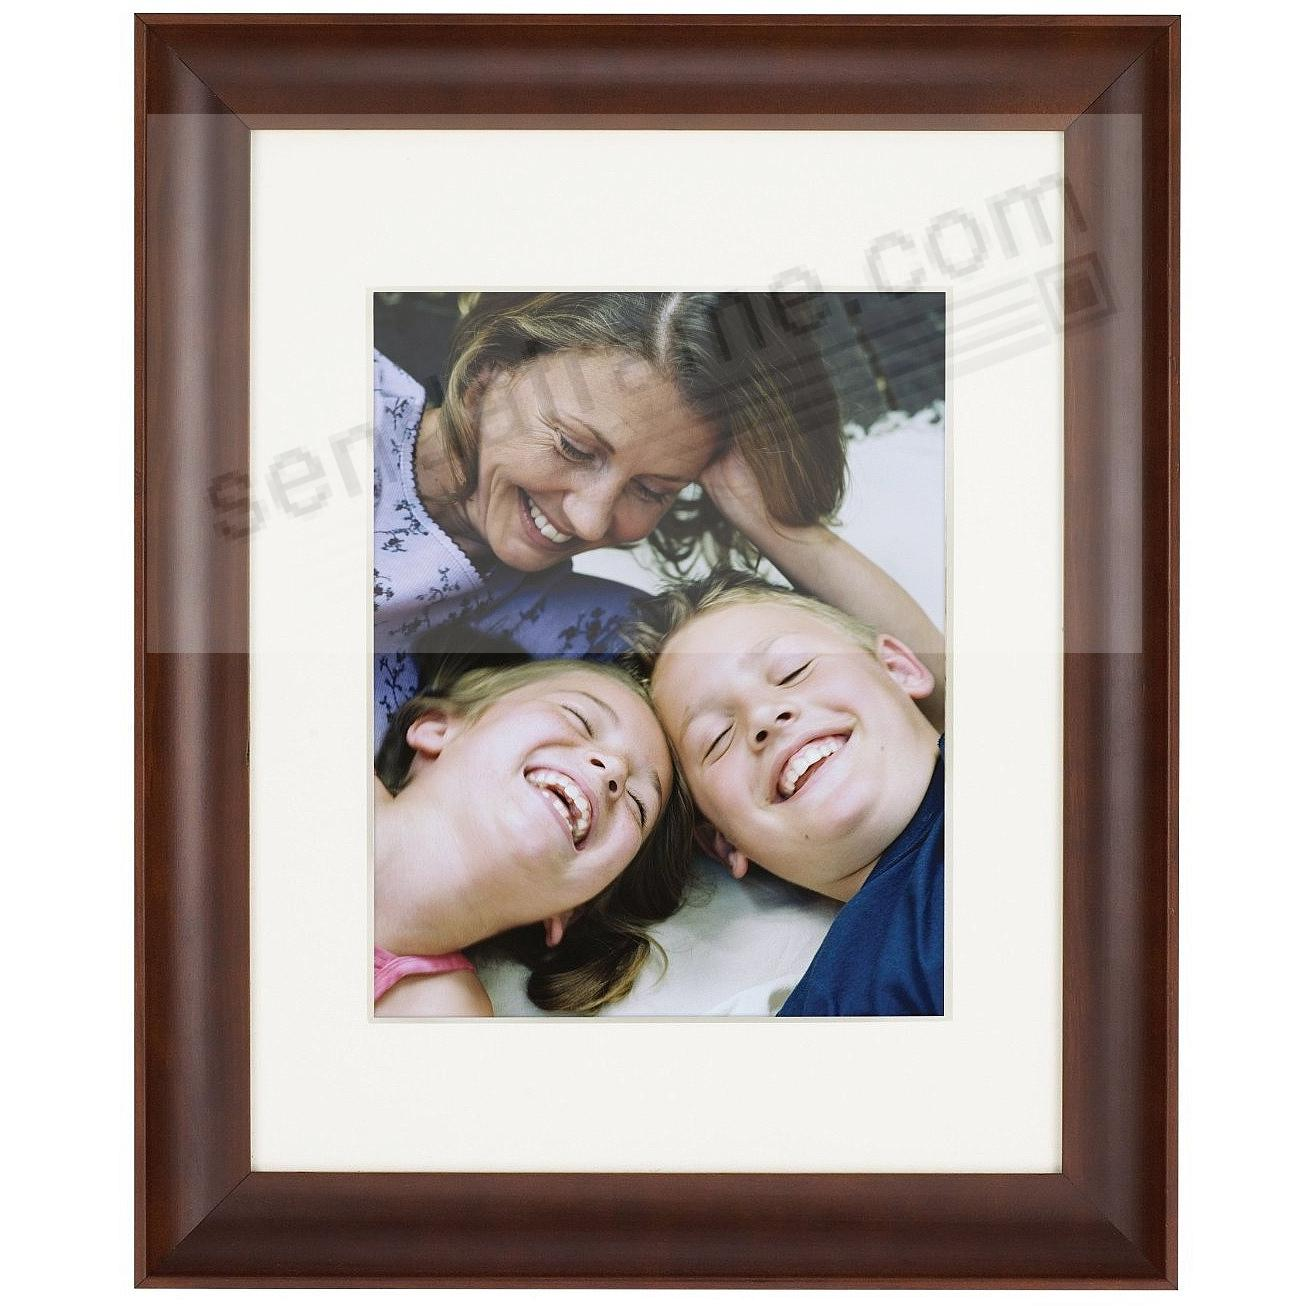 Walnut FAMILY matted scoop profile wood frame 11x14/16x20 from ...